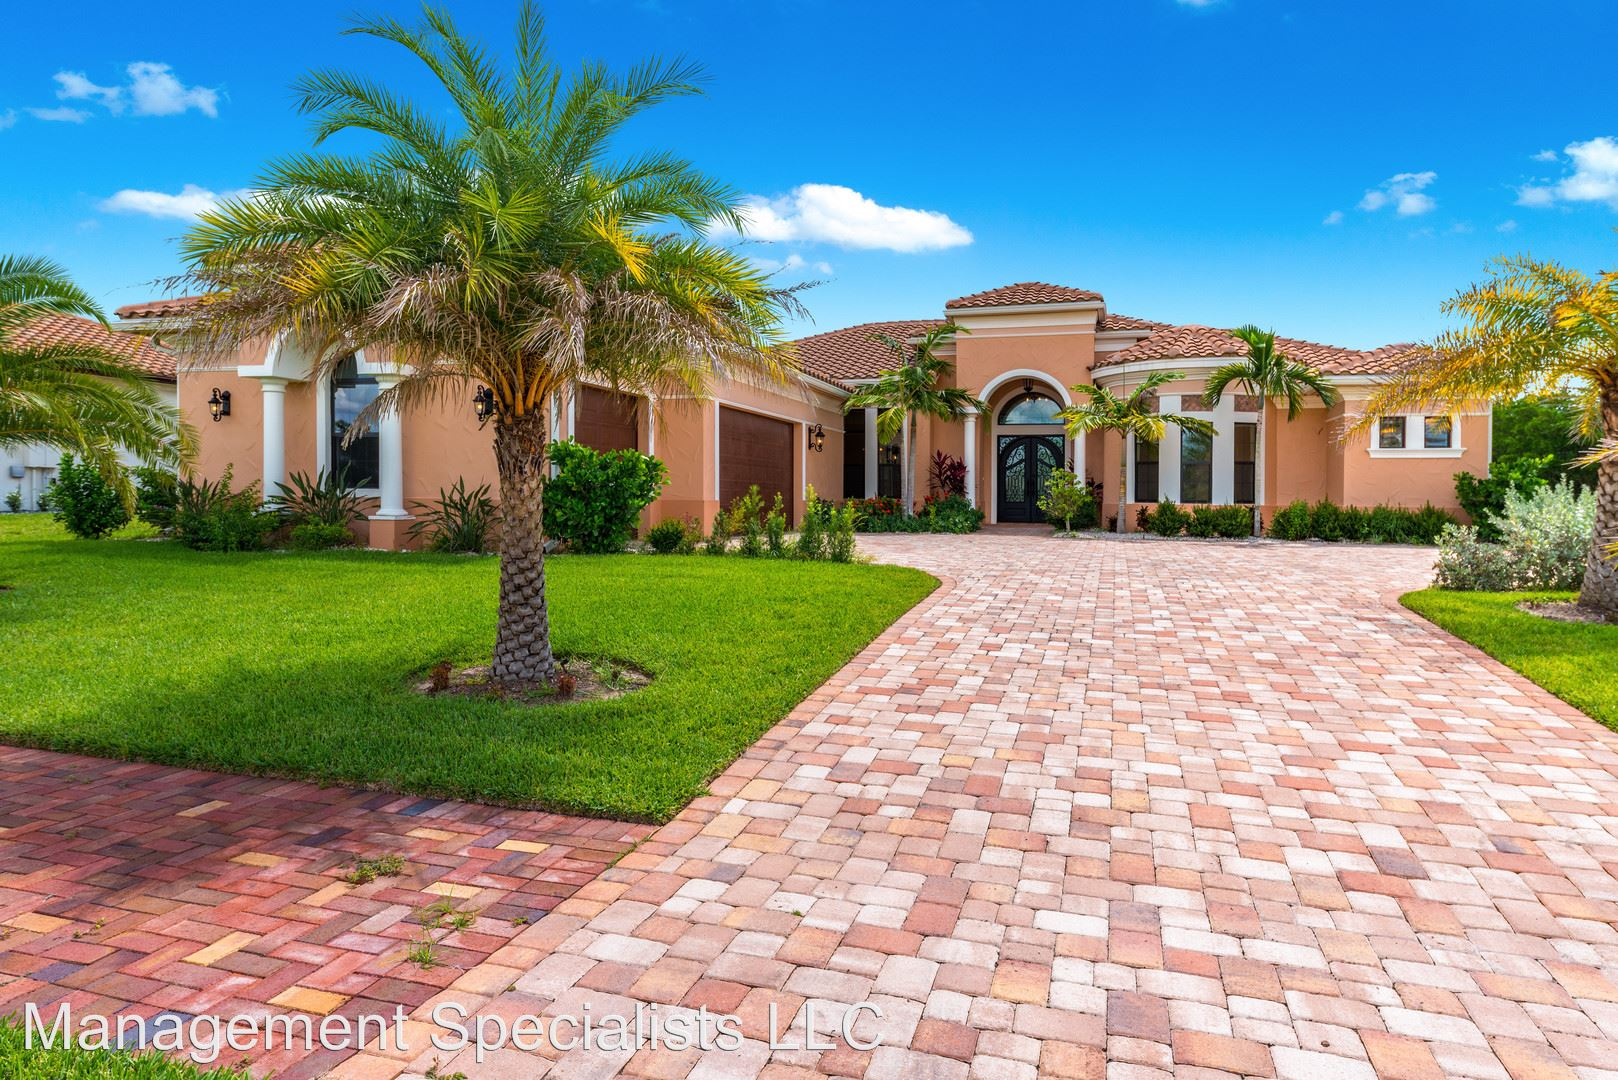 20 Best Apartments In Port St  Lucie, FL (with pictures)!